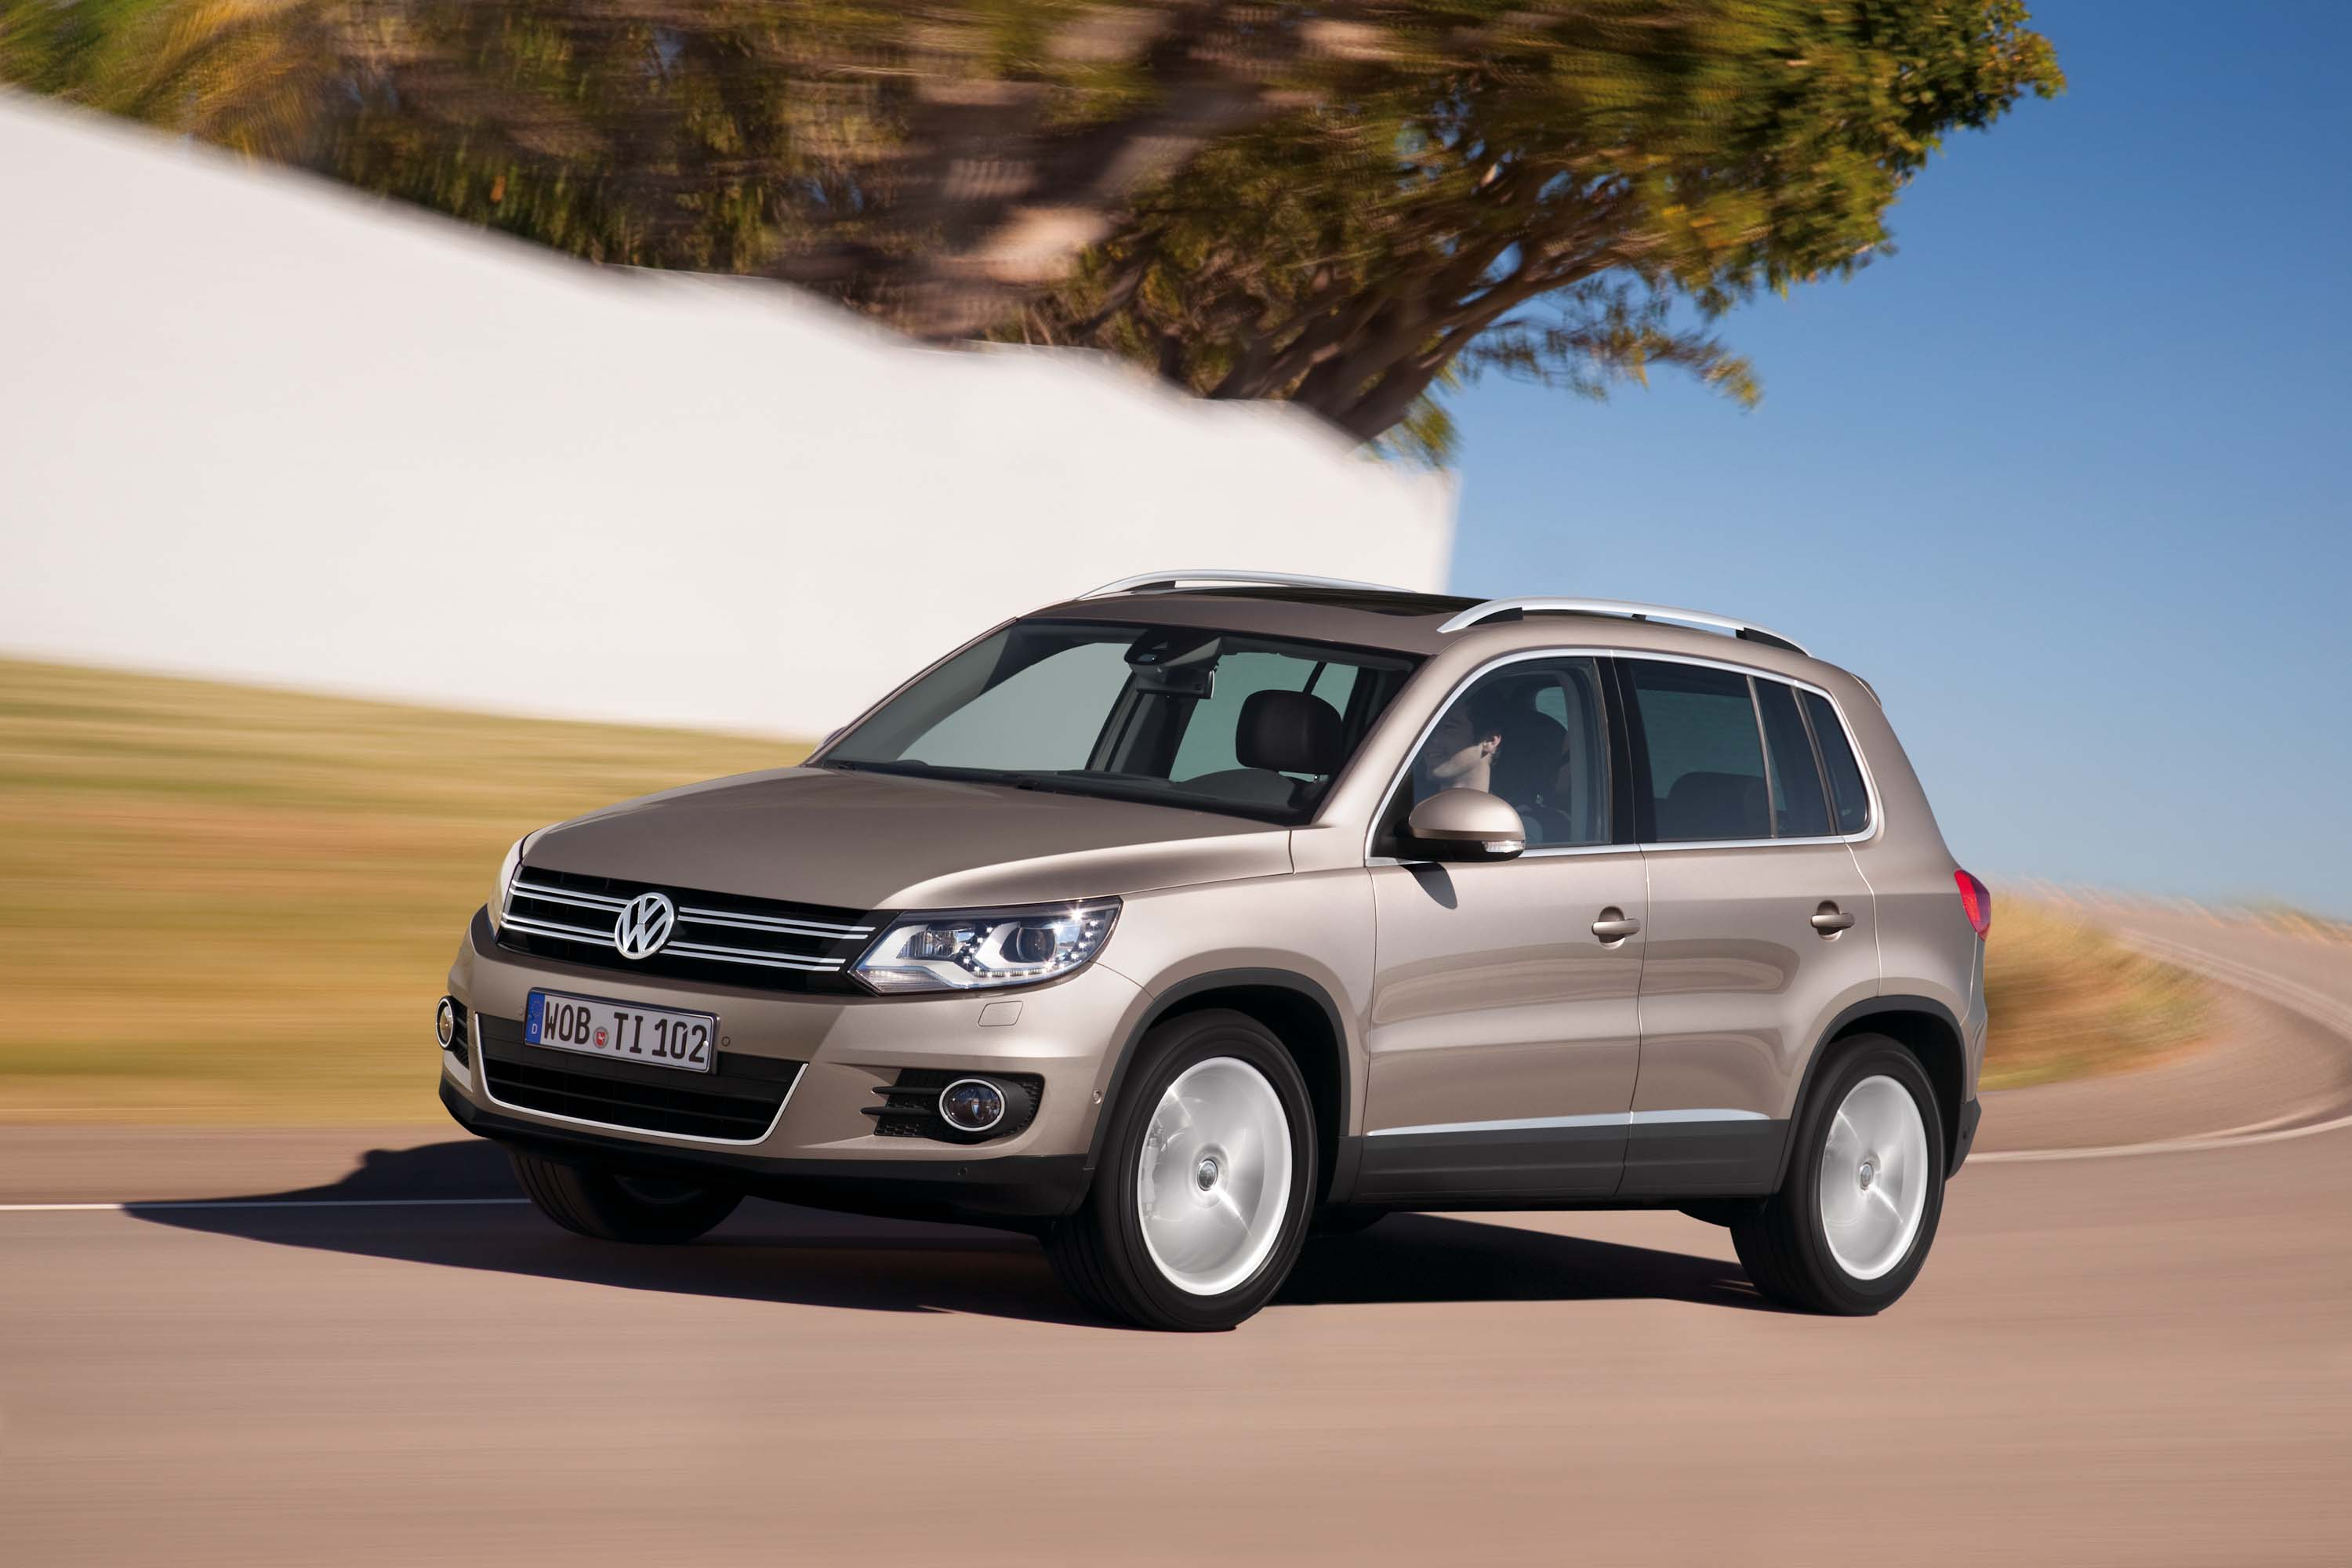 2018 volkswagen tiguan limited old model lives on for another year between the axles. Black Bedroom Furniture Sets. Home Design Ideas